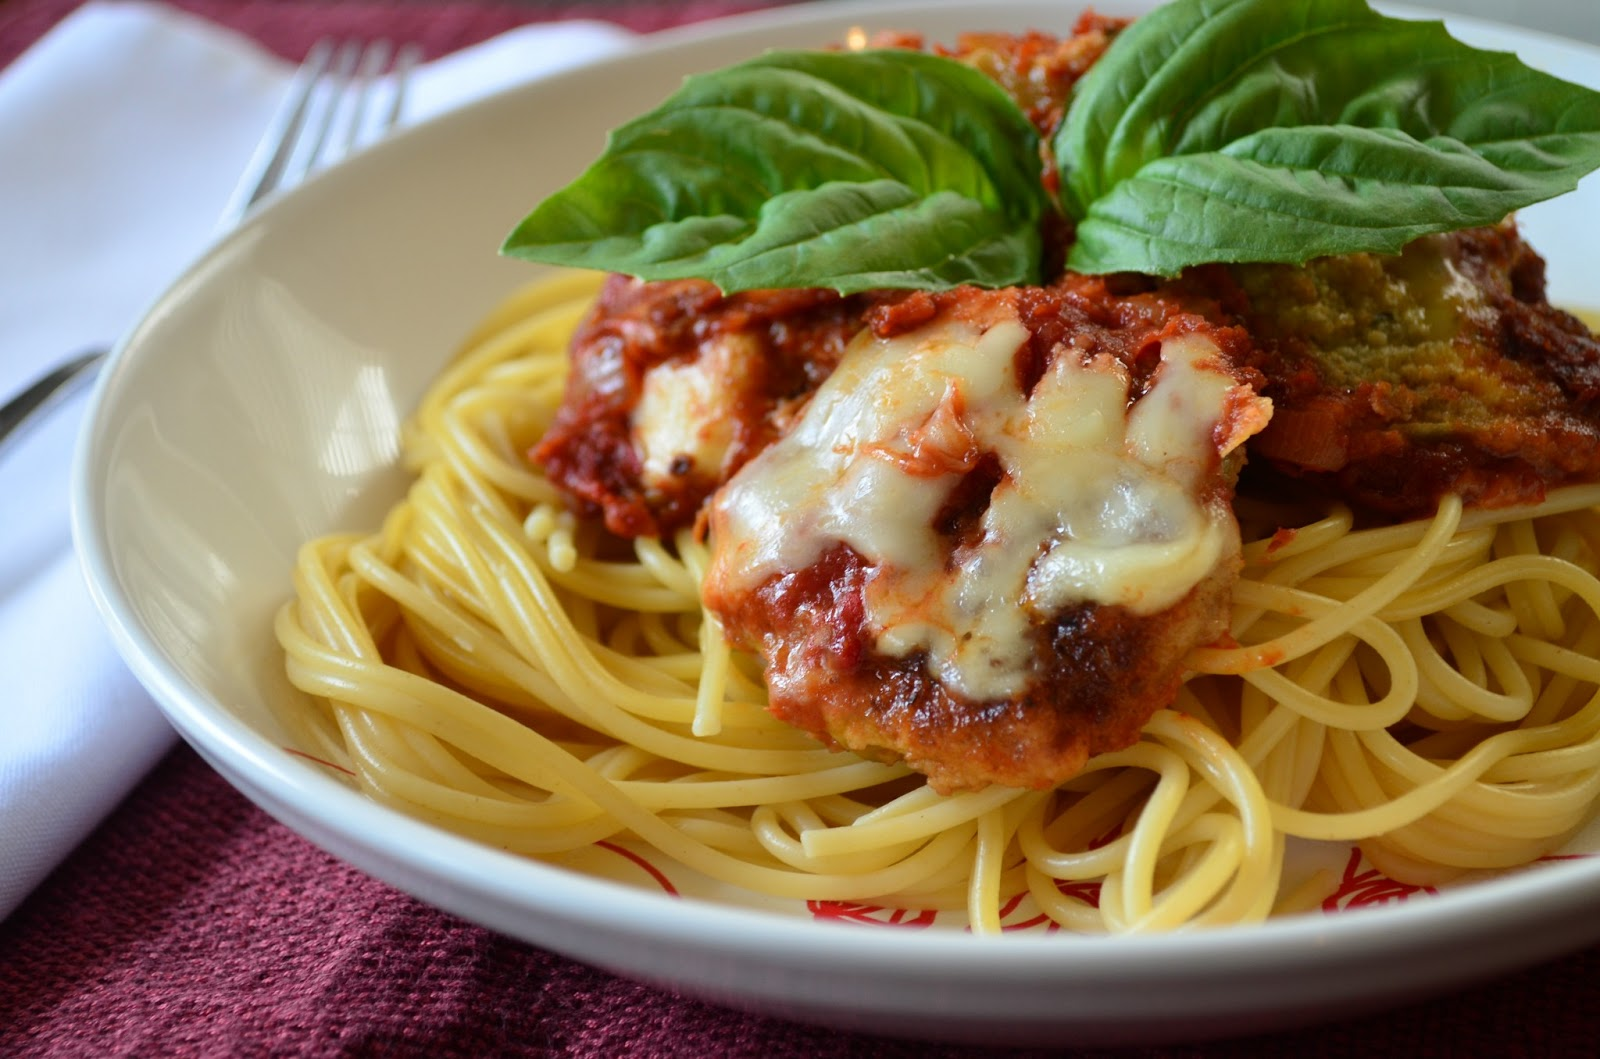 ... Cook» Blog Archive Skillet Eggplant Parmesan » Simple Gourmet Cook